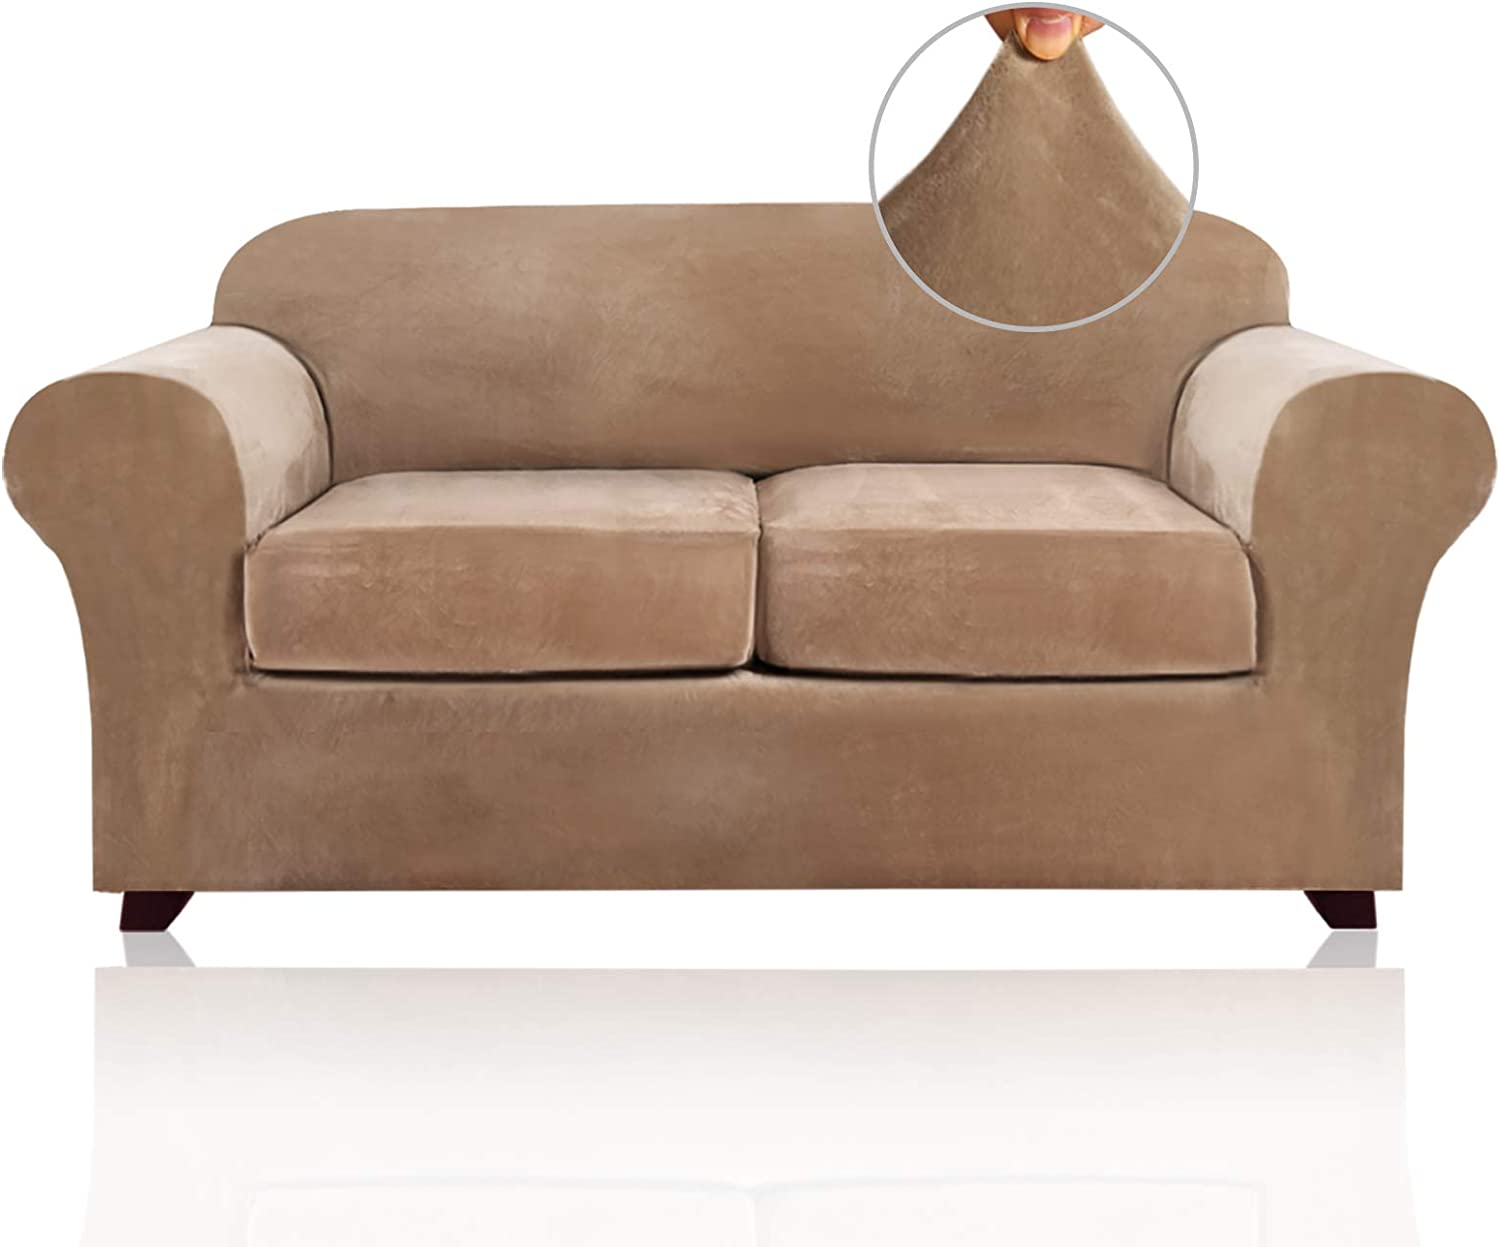 3 Pieces Sofa Covers Stretch Velvet Couch Covers for 2 Cushion Sofa Slipcovers Soft Sofa Slip Covers with 2 Non Slip Straps Furniture Covers with 2 Individual Seat Cushion Covers (Loveseat, Camel)